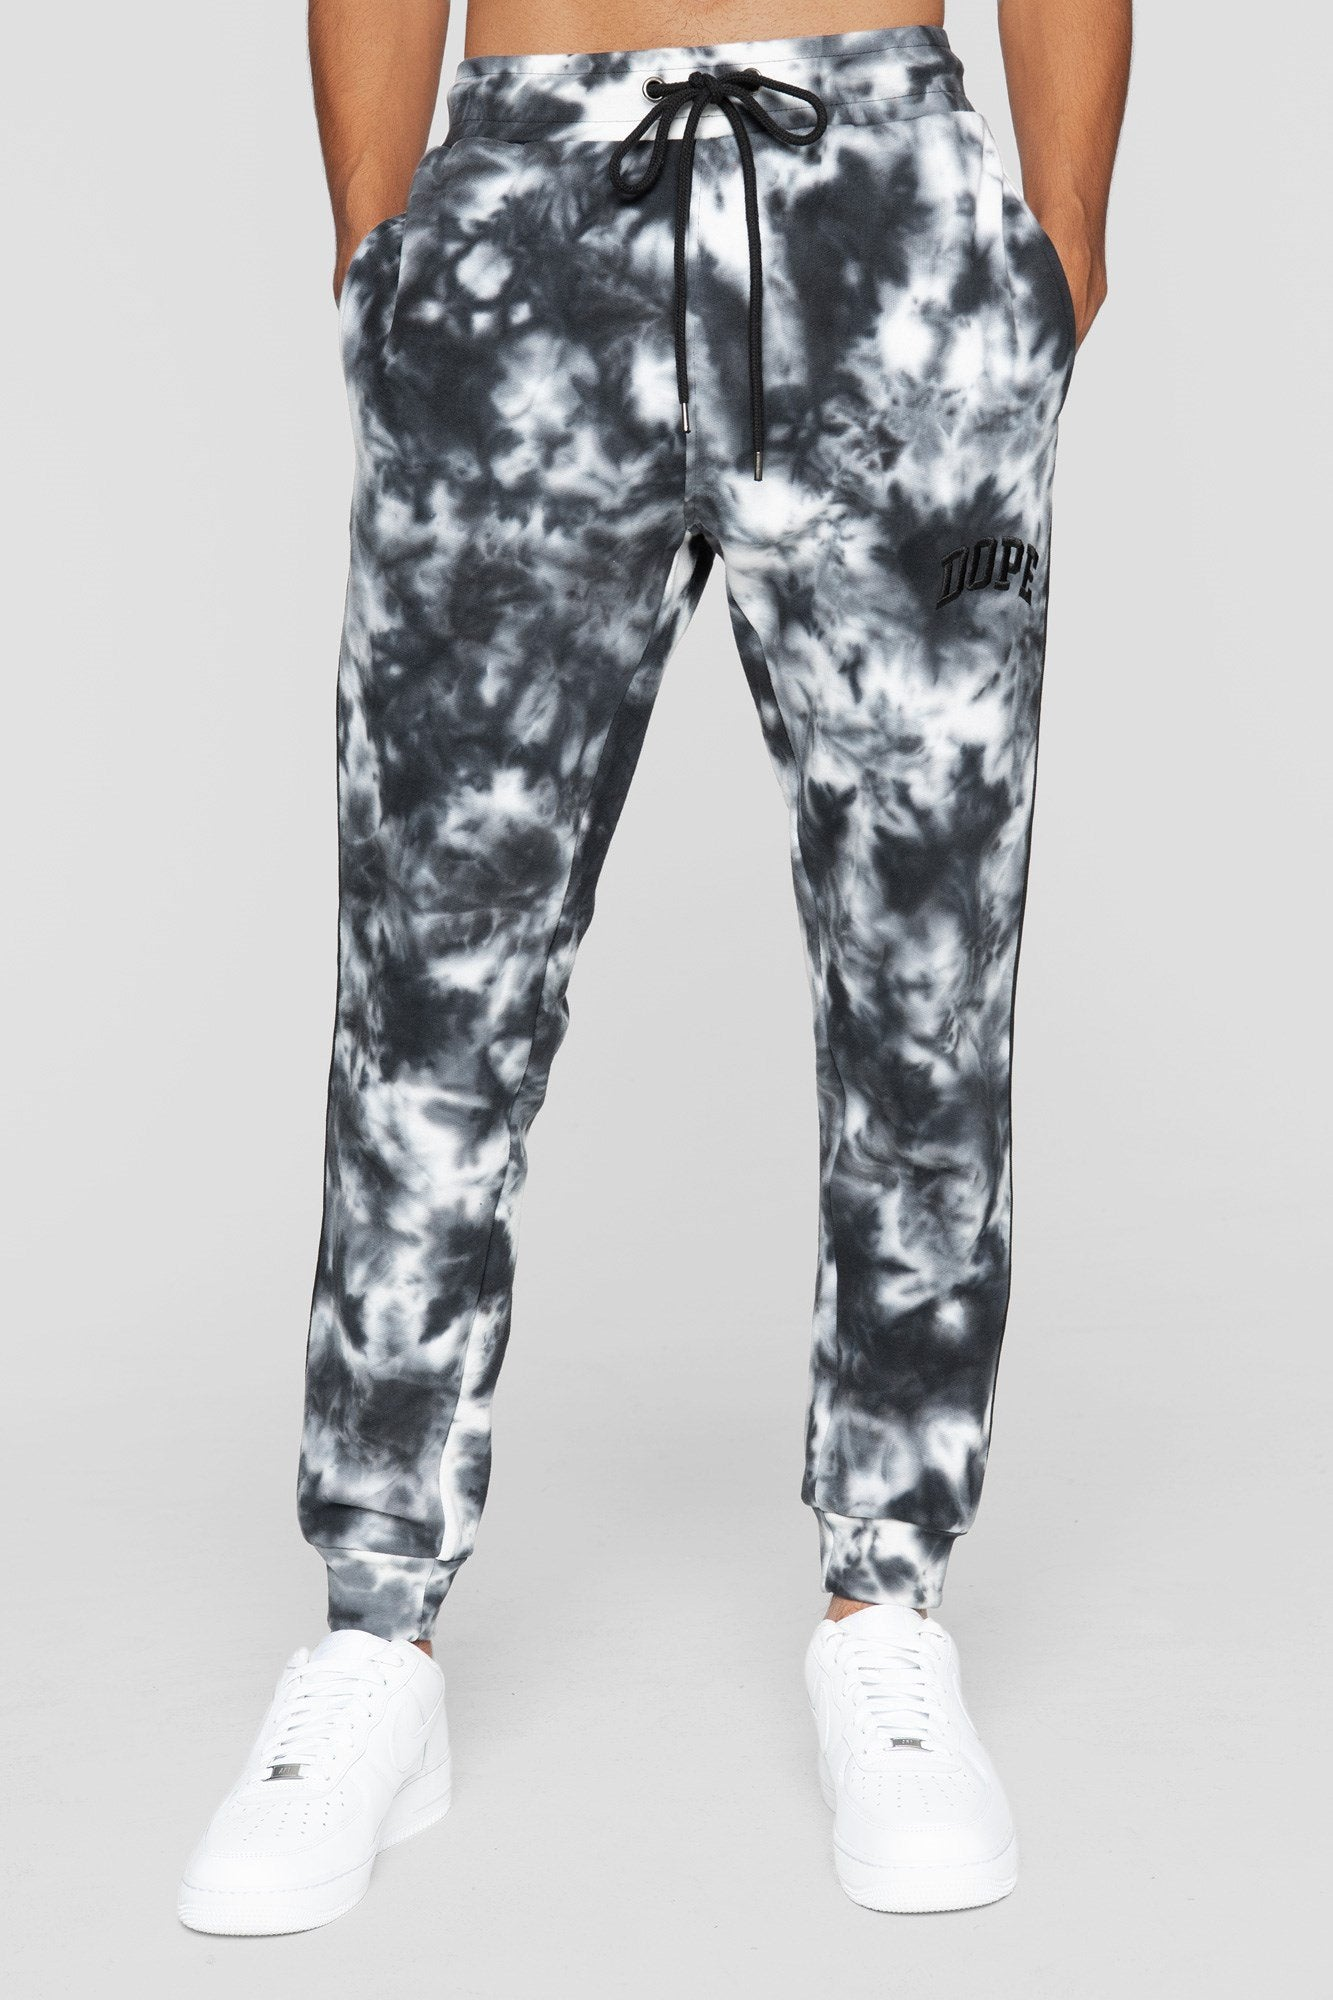 DOPE Dye Sweatpants #Black